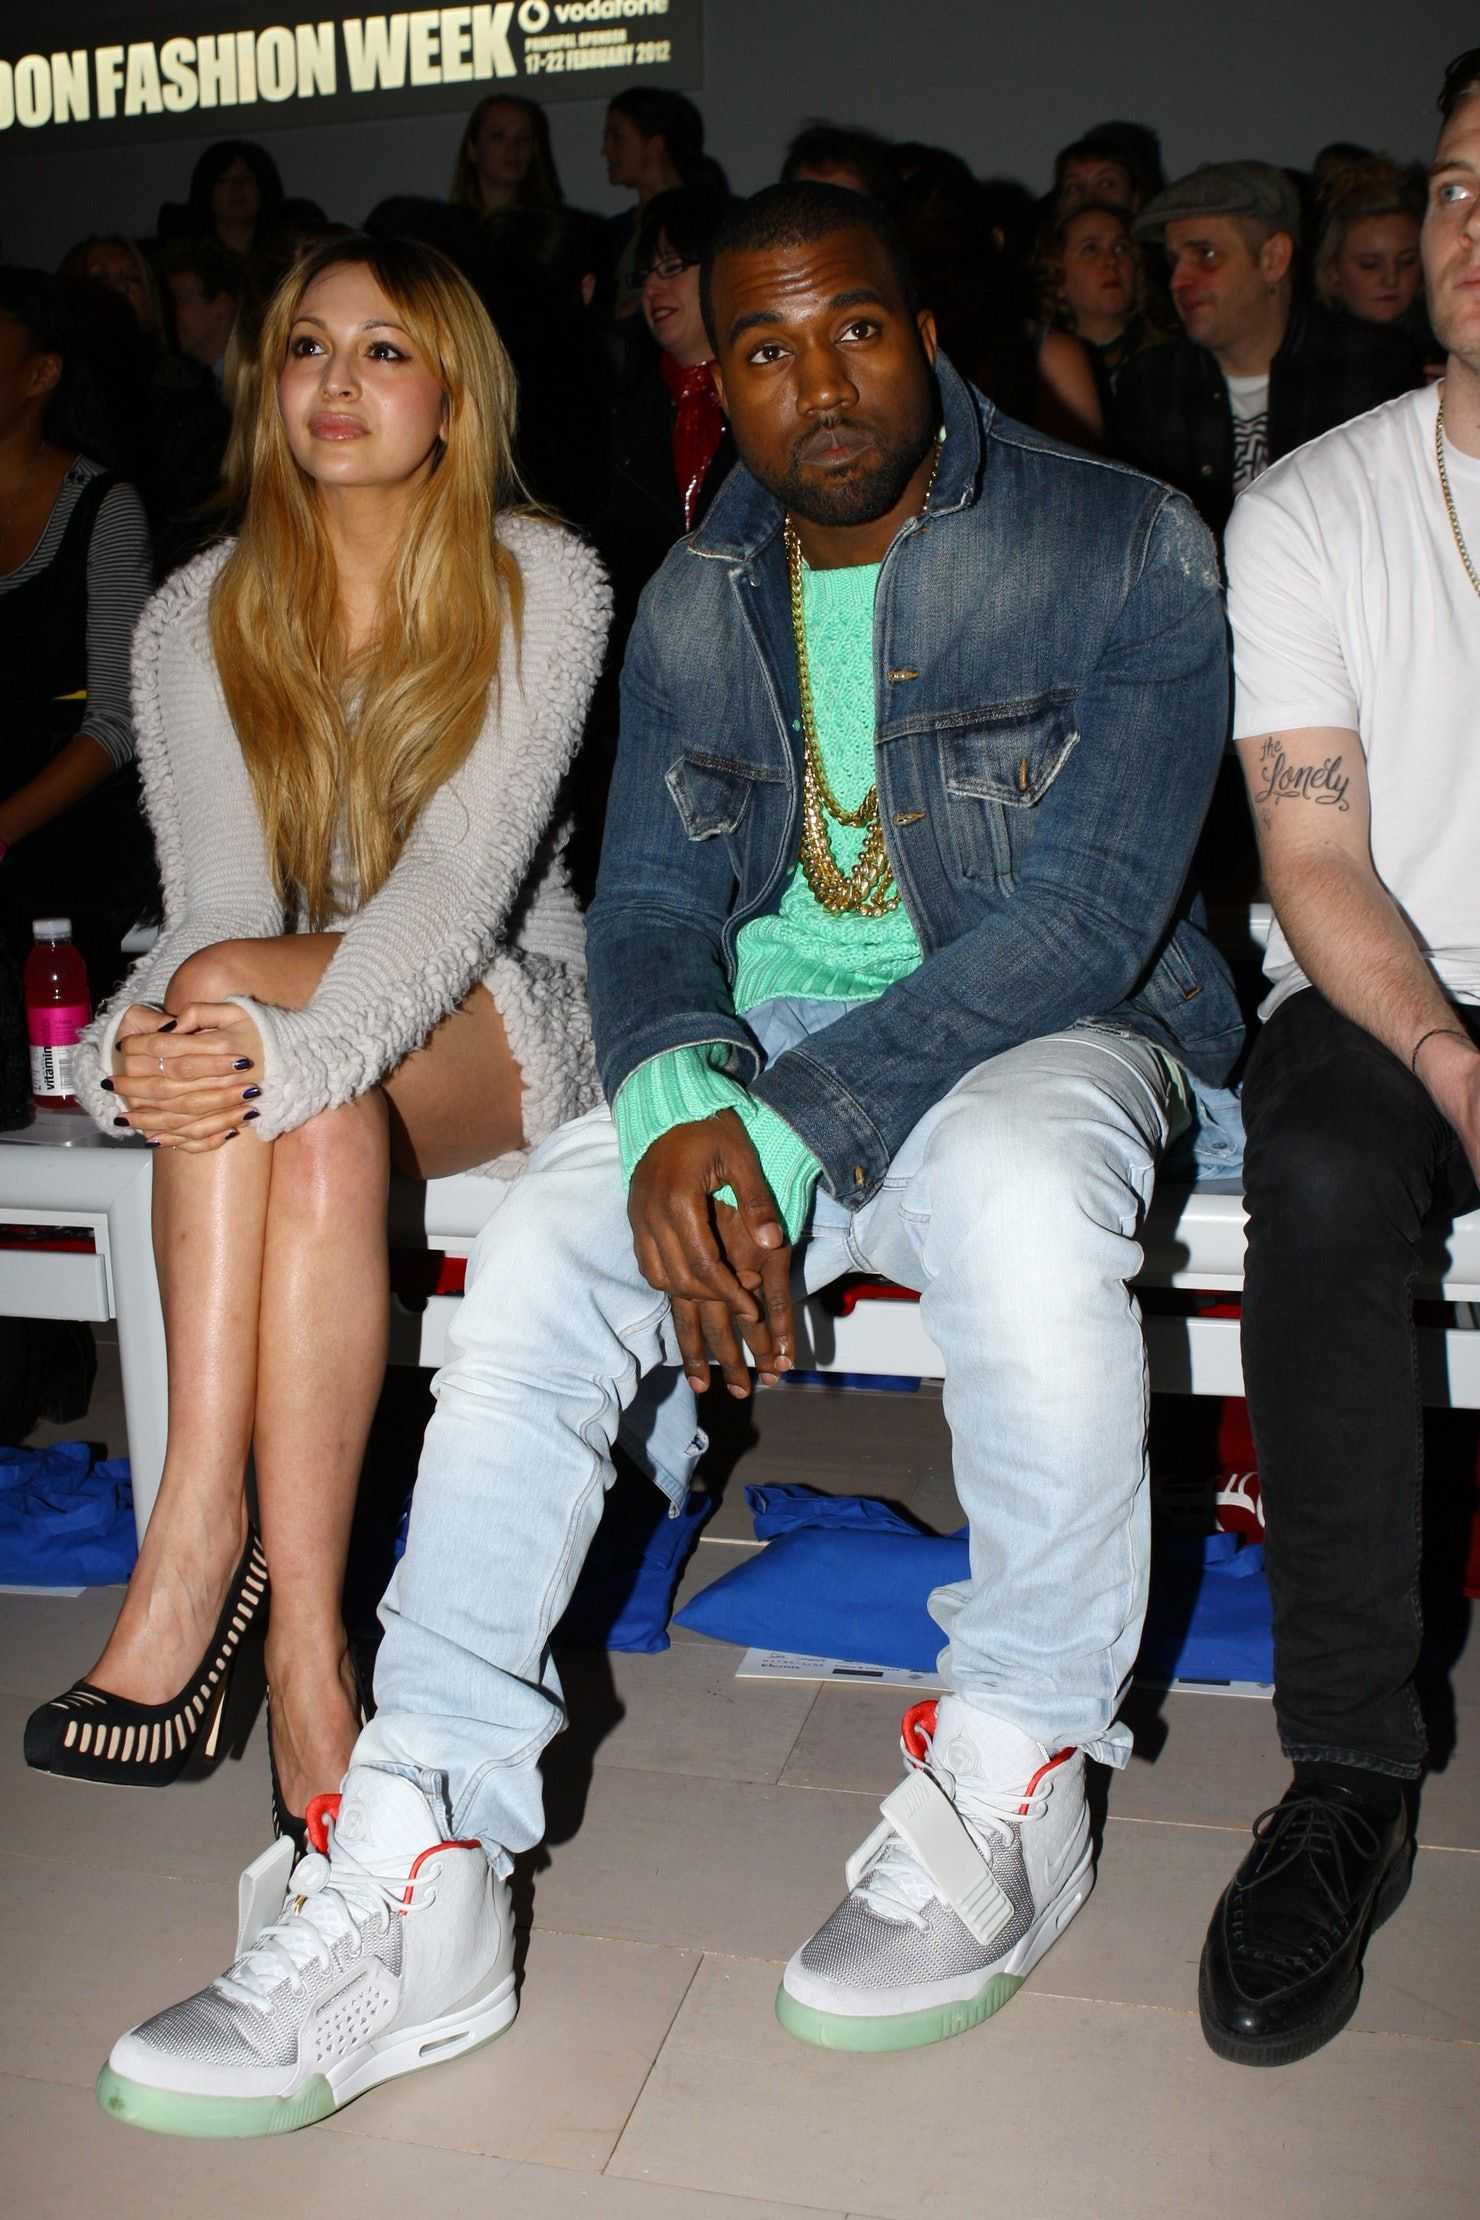 Kanye West S Style Evolution Proves Why He Is Truly A Fashion Icon No Matter What The Haters Say Kanye West Style Celebrity Sneakers Fashion